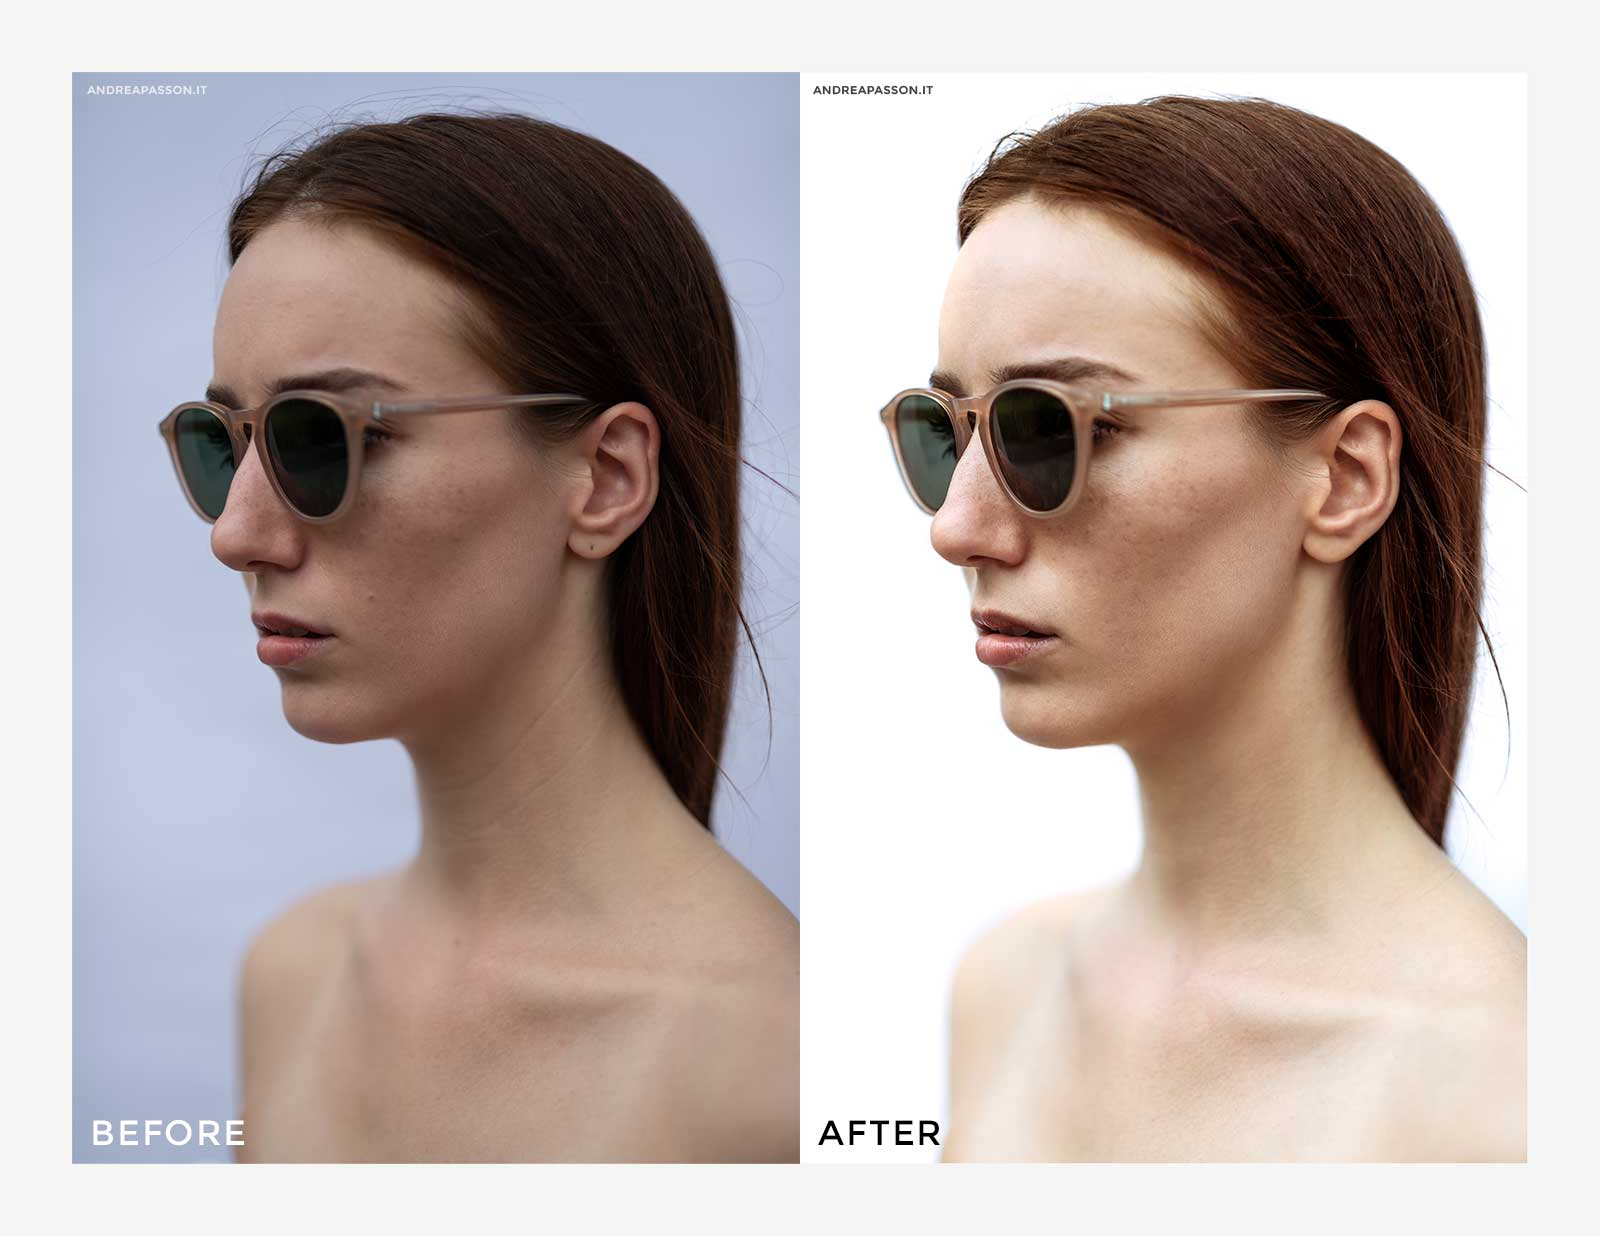 Before & After - Post Produzione Fotografica Professionale a Treviso - Eyewear Fashion